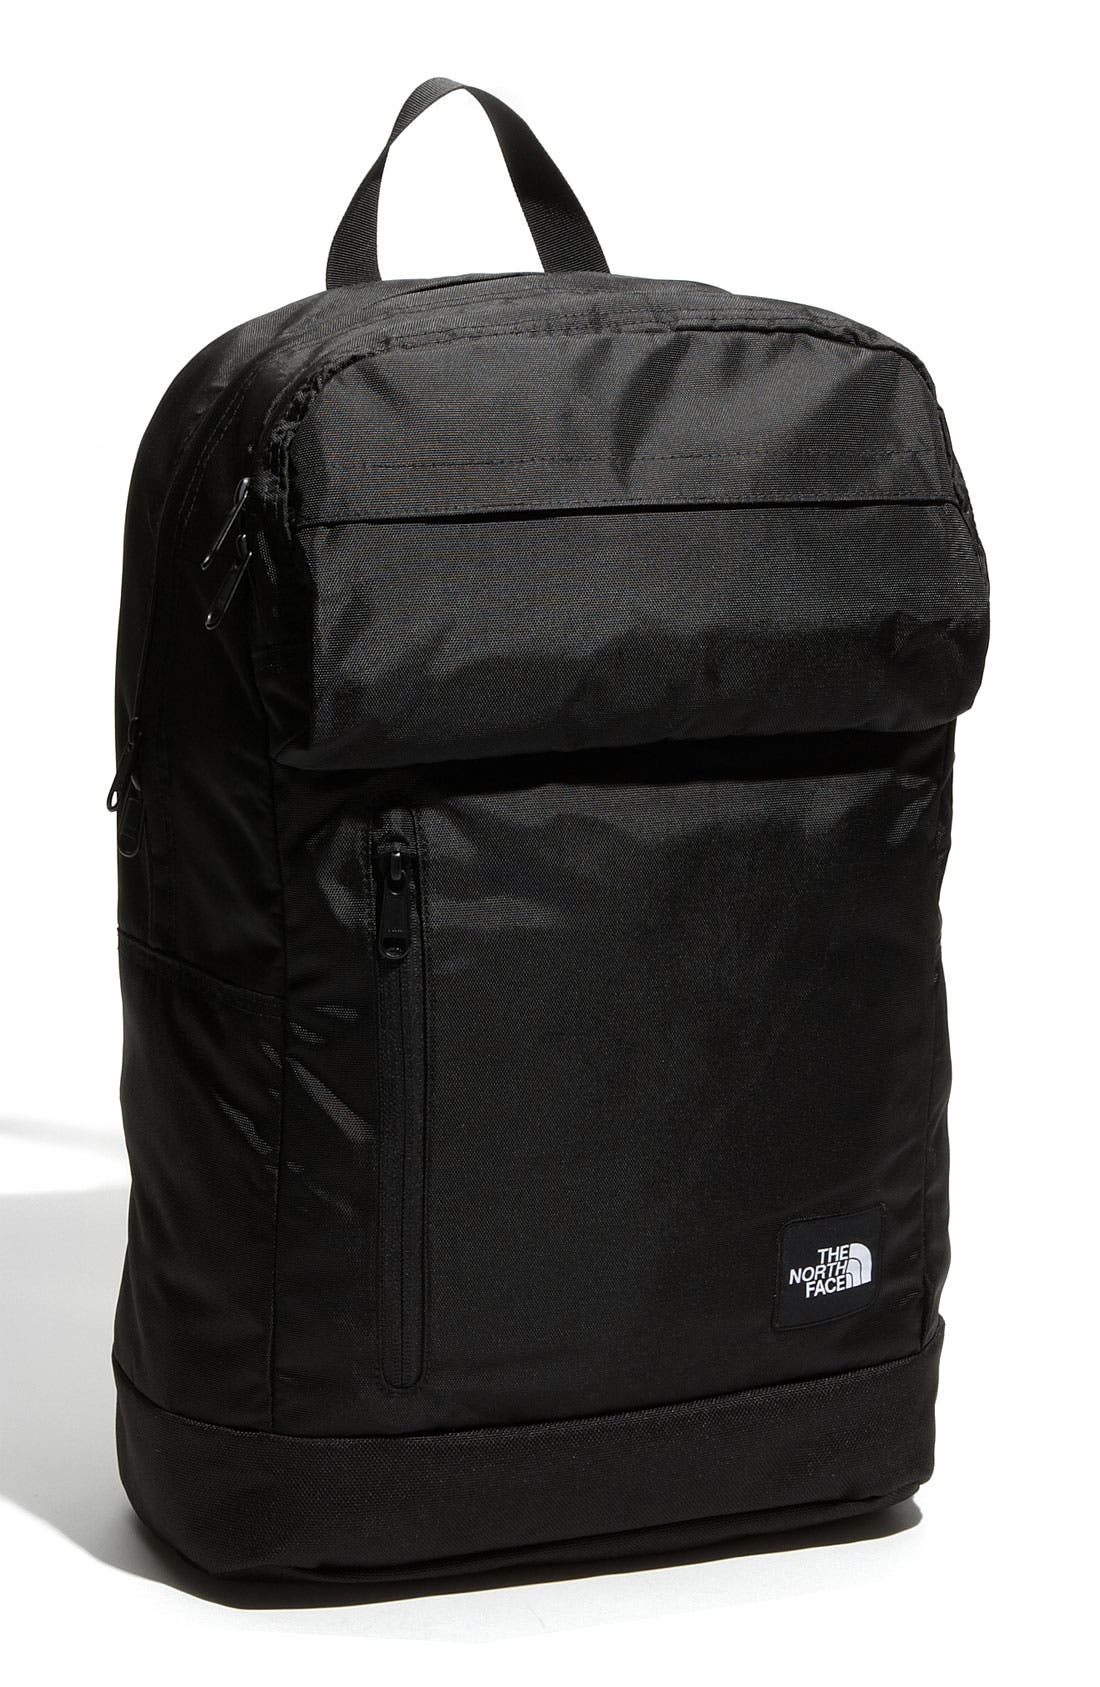 Alternate Image 1 Selected - The North Face 'Singletasker' Backpack